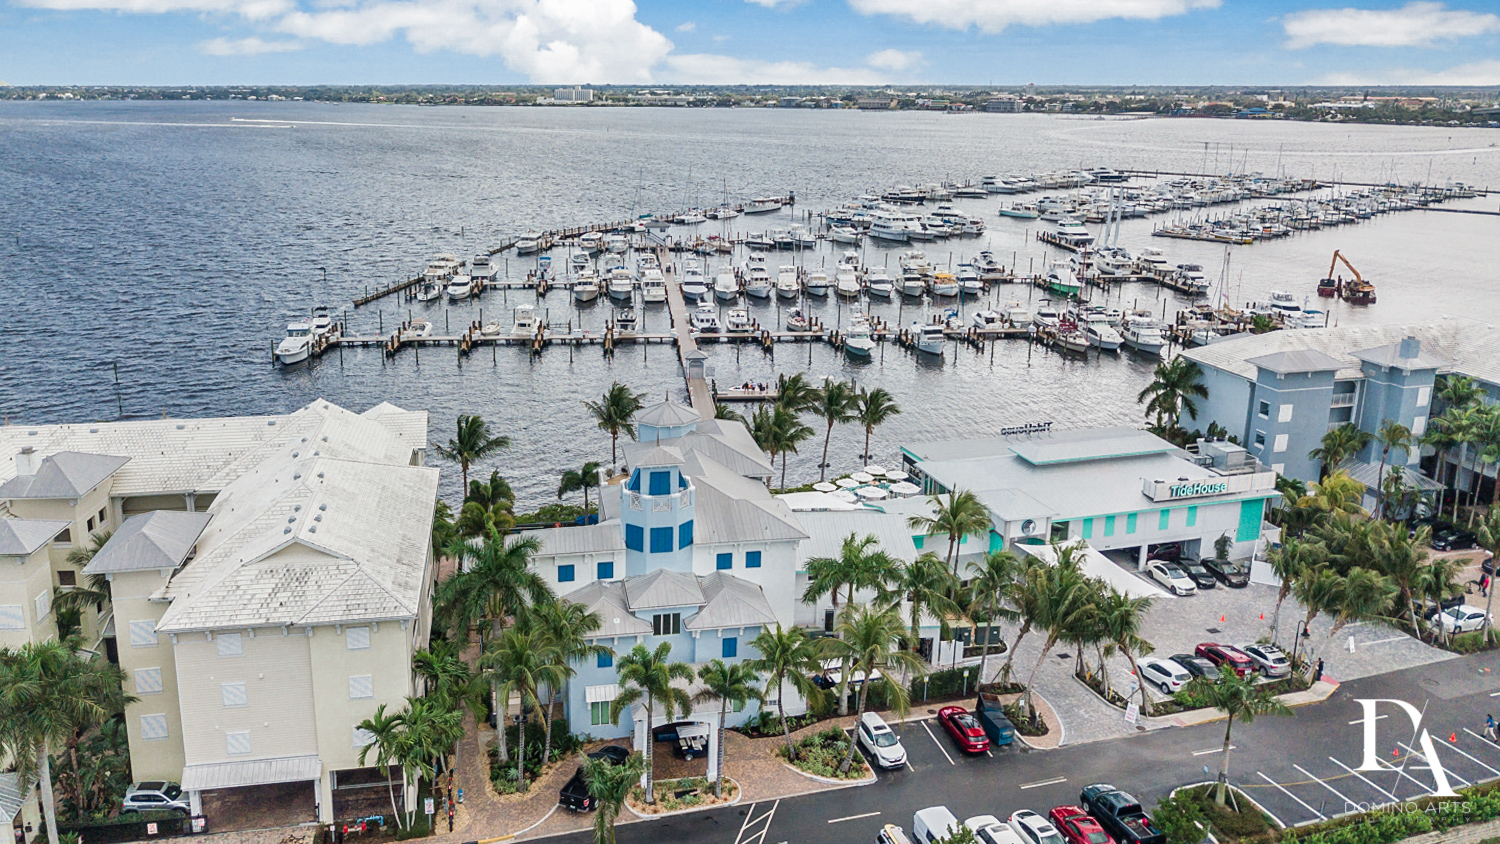 boats at Harborage Yacht Club & Marina by Domino Arts Photography